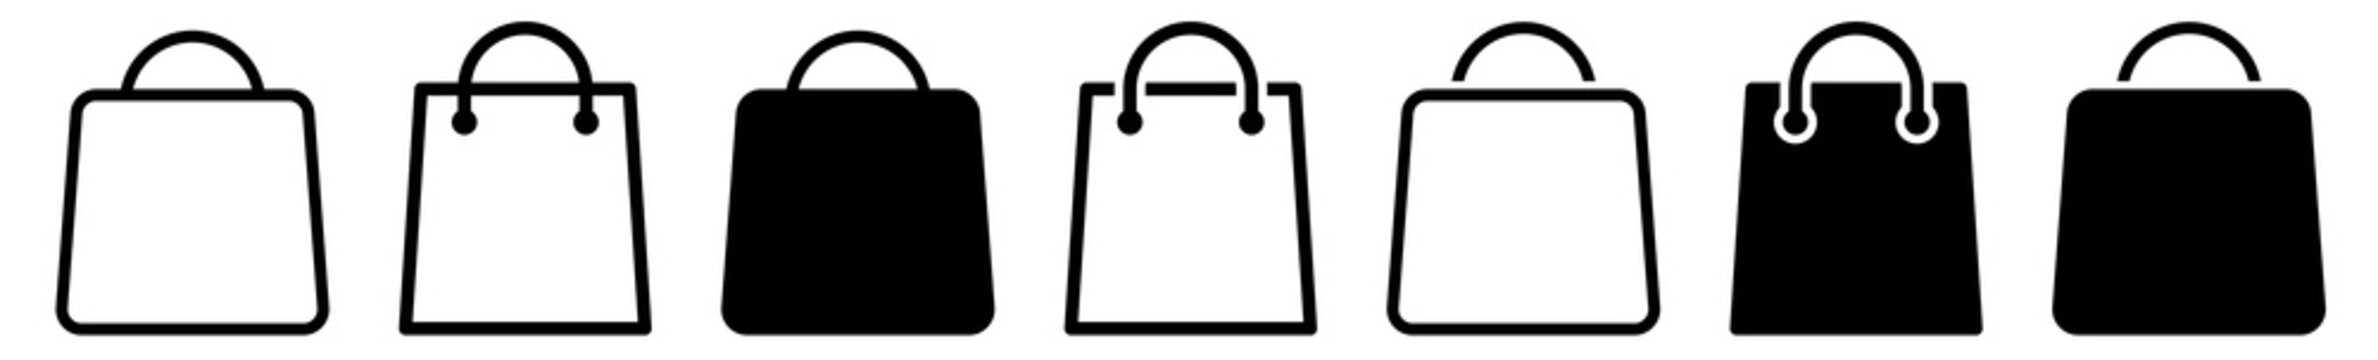 Shopping Bag Icon Black | Paper Bags Illustration | Online Shop Symbol | E-Commerce Logo | Commerce Sign | Isolated | Variations